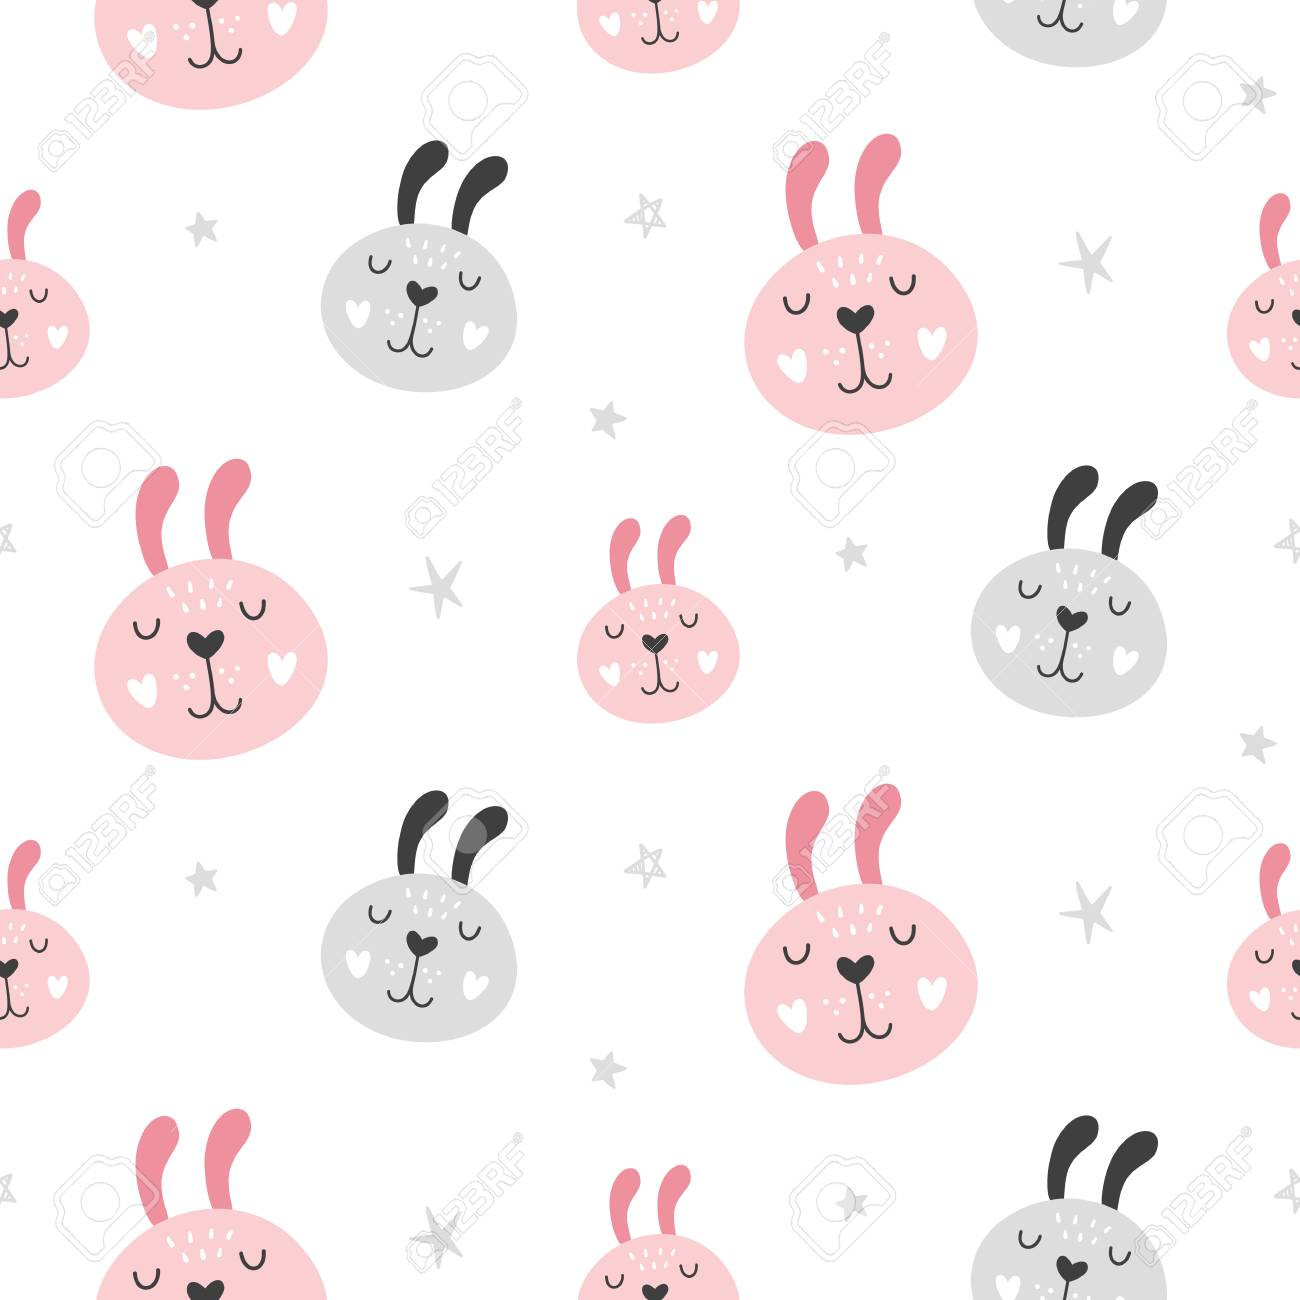 Nursery Childish Seamless Pattern Background With Rabbit Faces. Hand Drawn Scandinavian Style Trendy Textile, Wallpaper, Wrapping Paper Design. Vector illustration - 115003624